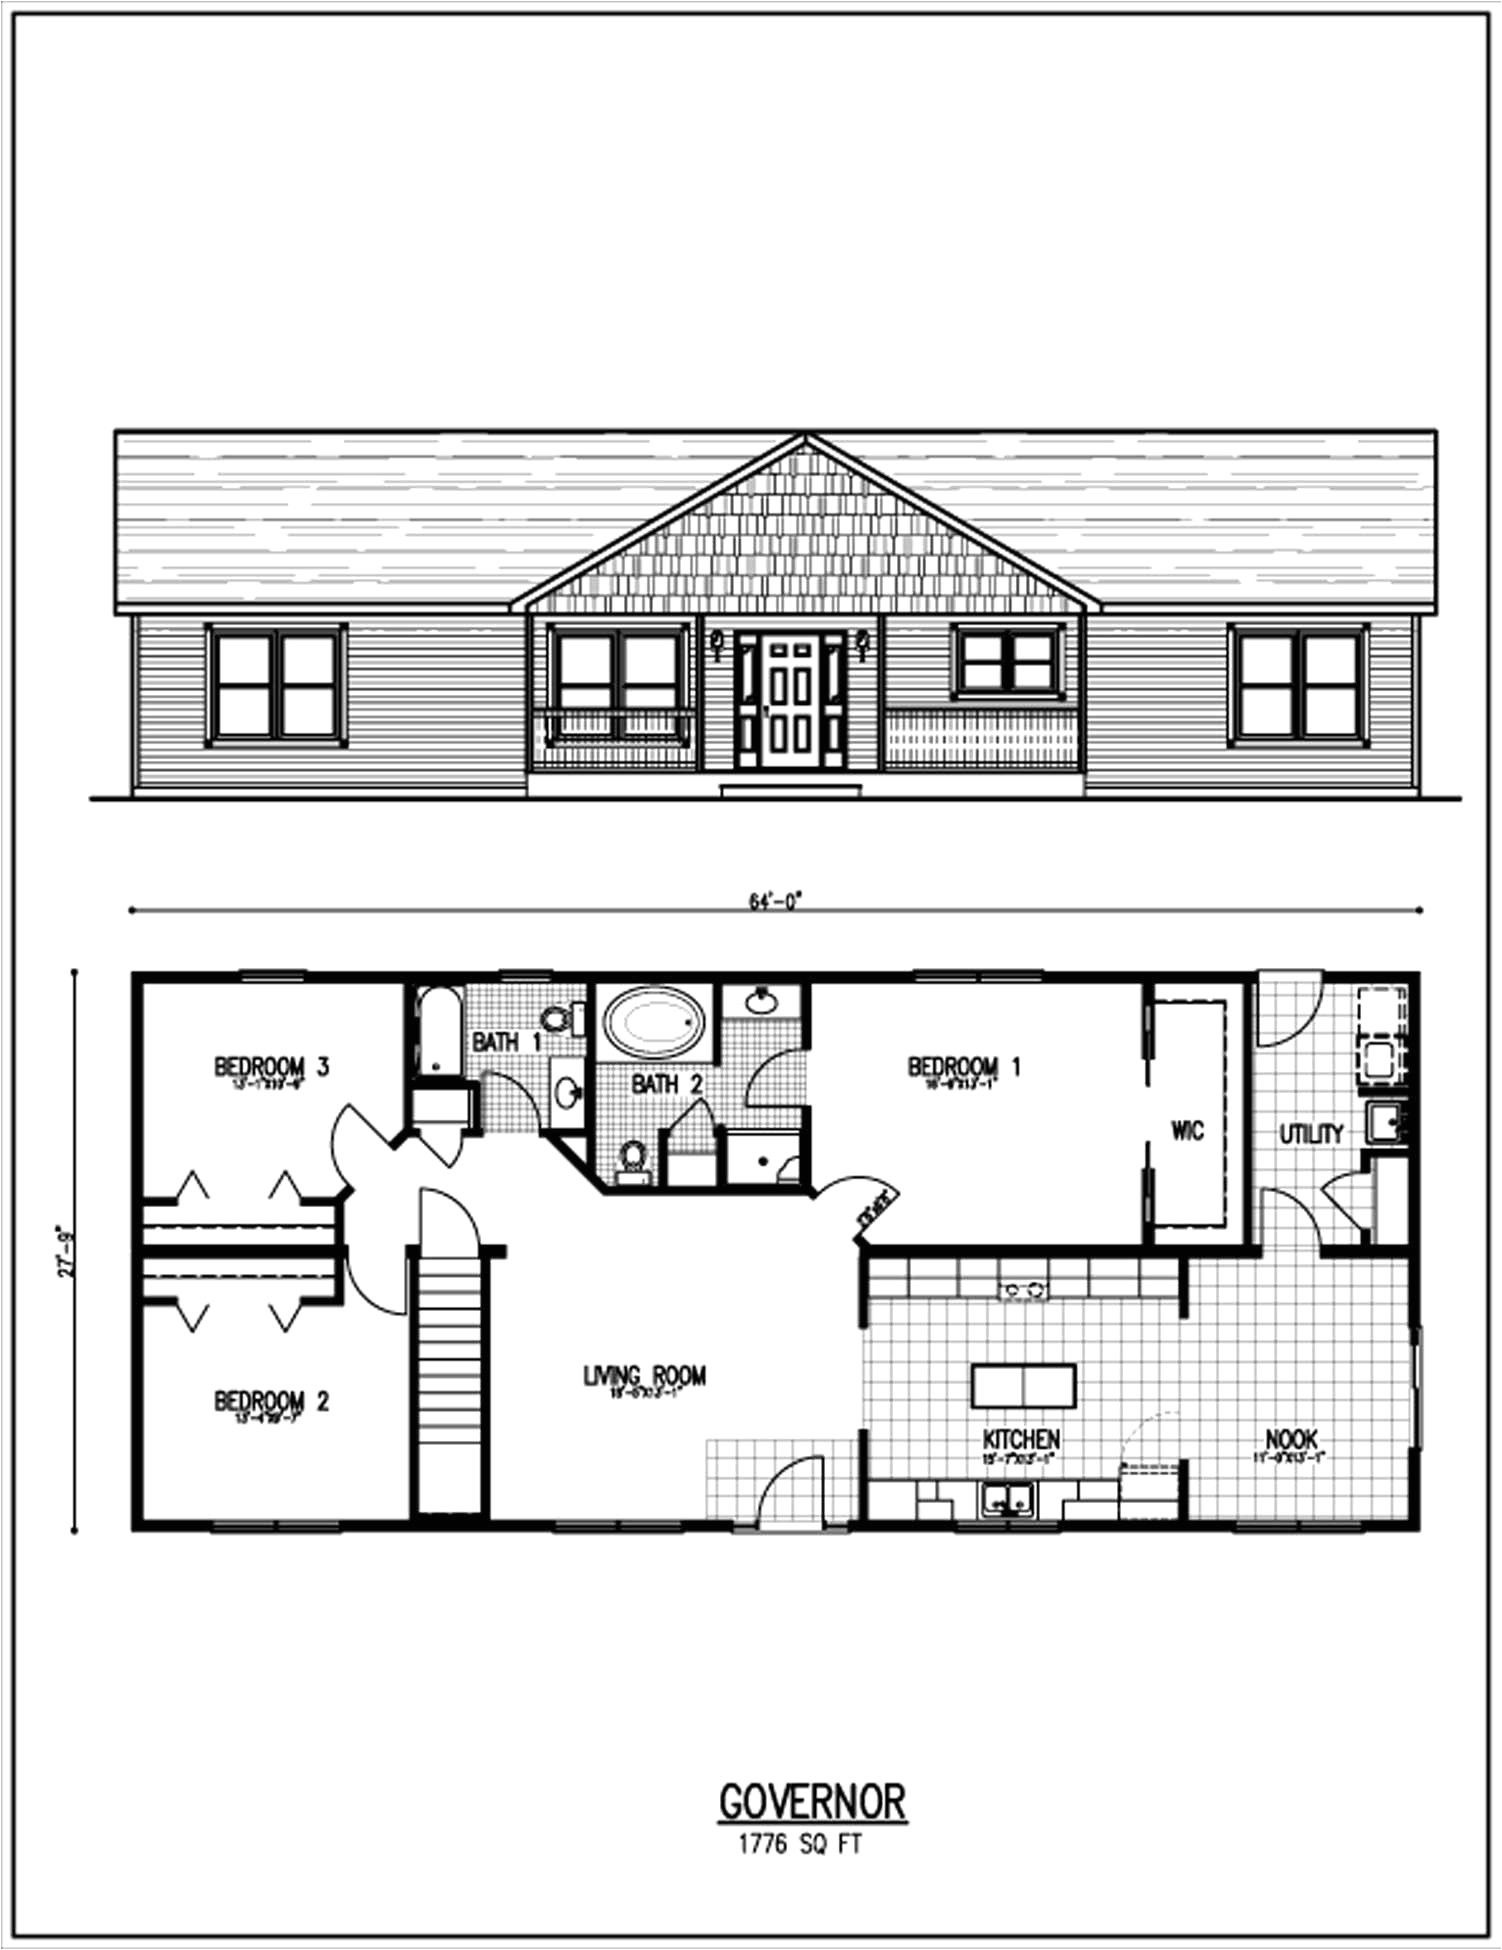 Houses that Can Be Built for Under 150k Lovely House Plans Under 150k to Build Check More at S